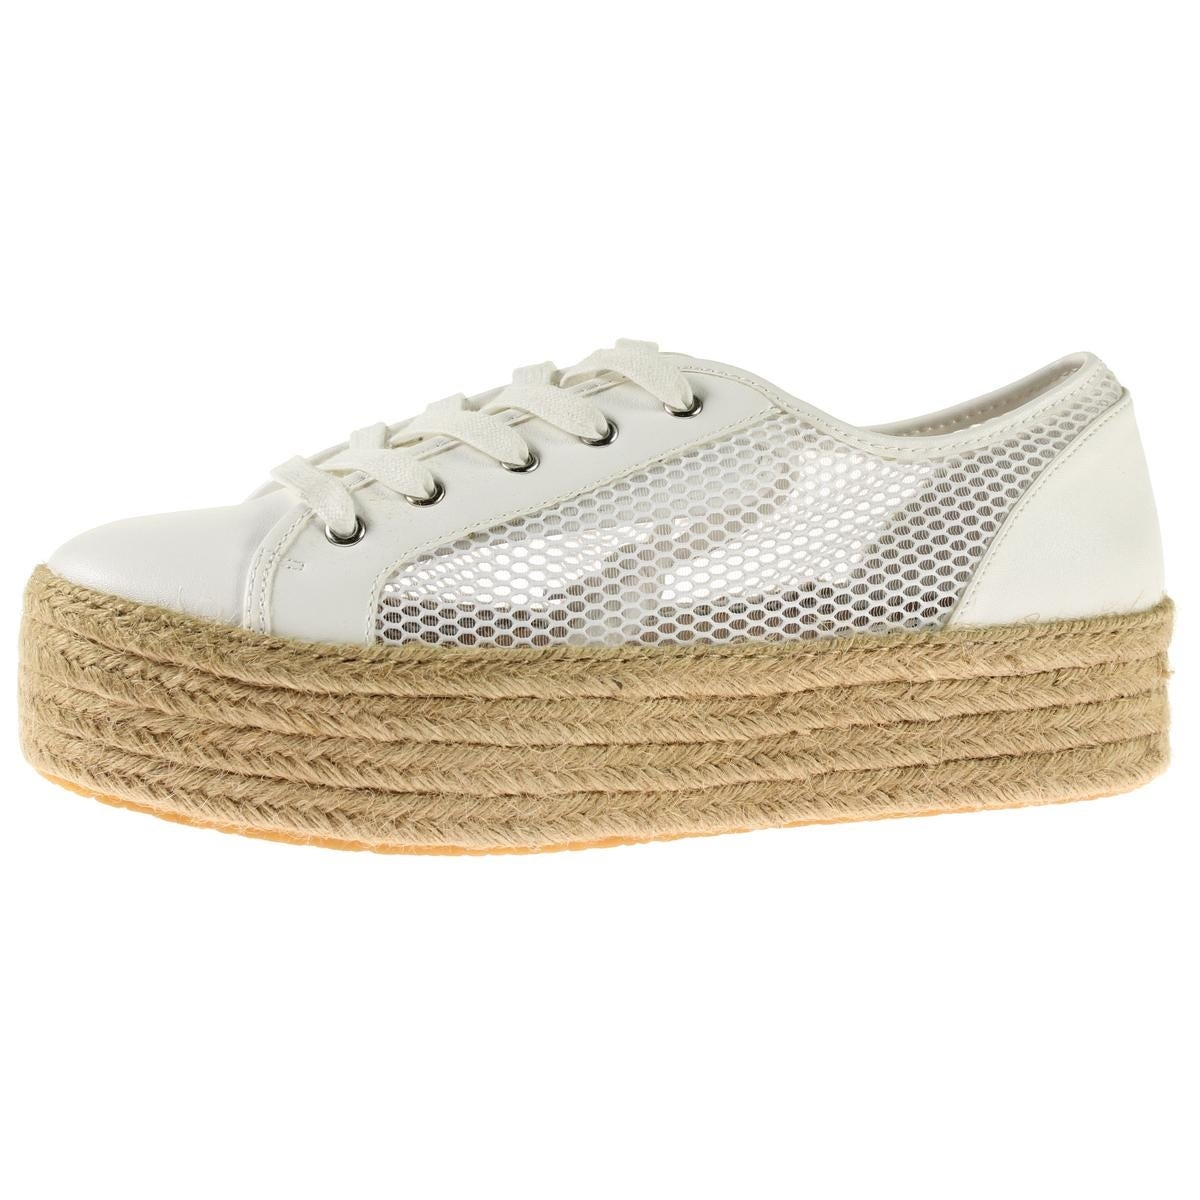 a2af39995dd Shop Steve Madden Womens Mars Fashion Sneakers Espadrille Platform - Free  Shipping On Orders Over  45 - Overstock - 20199726